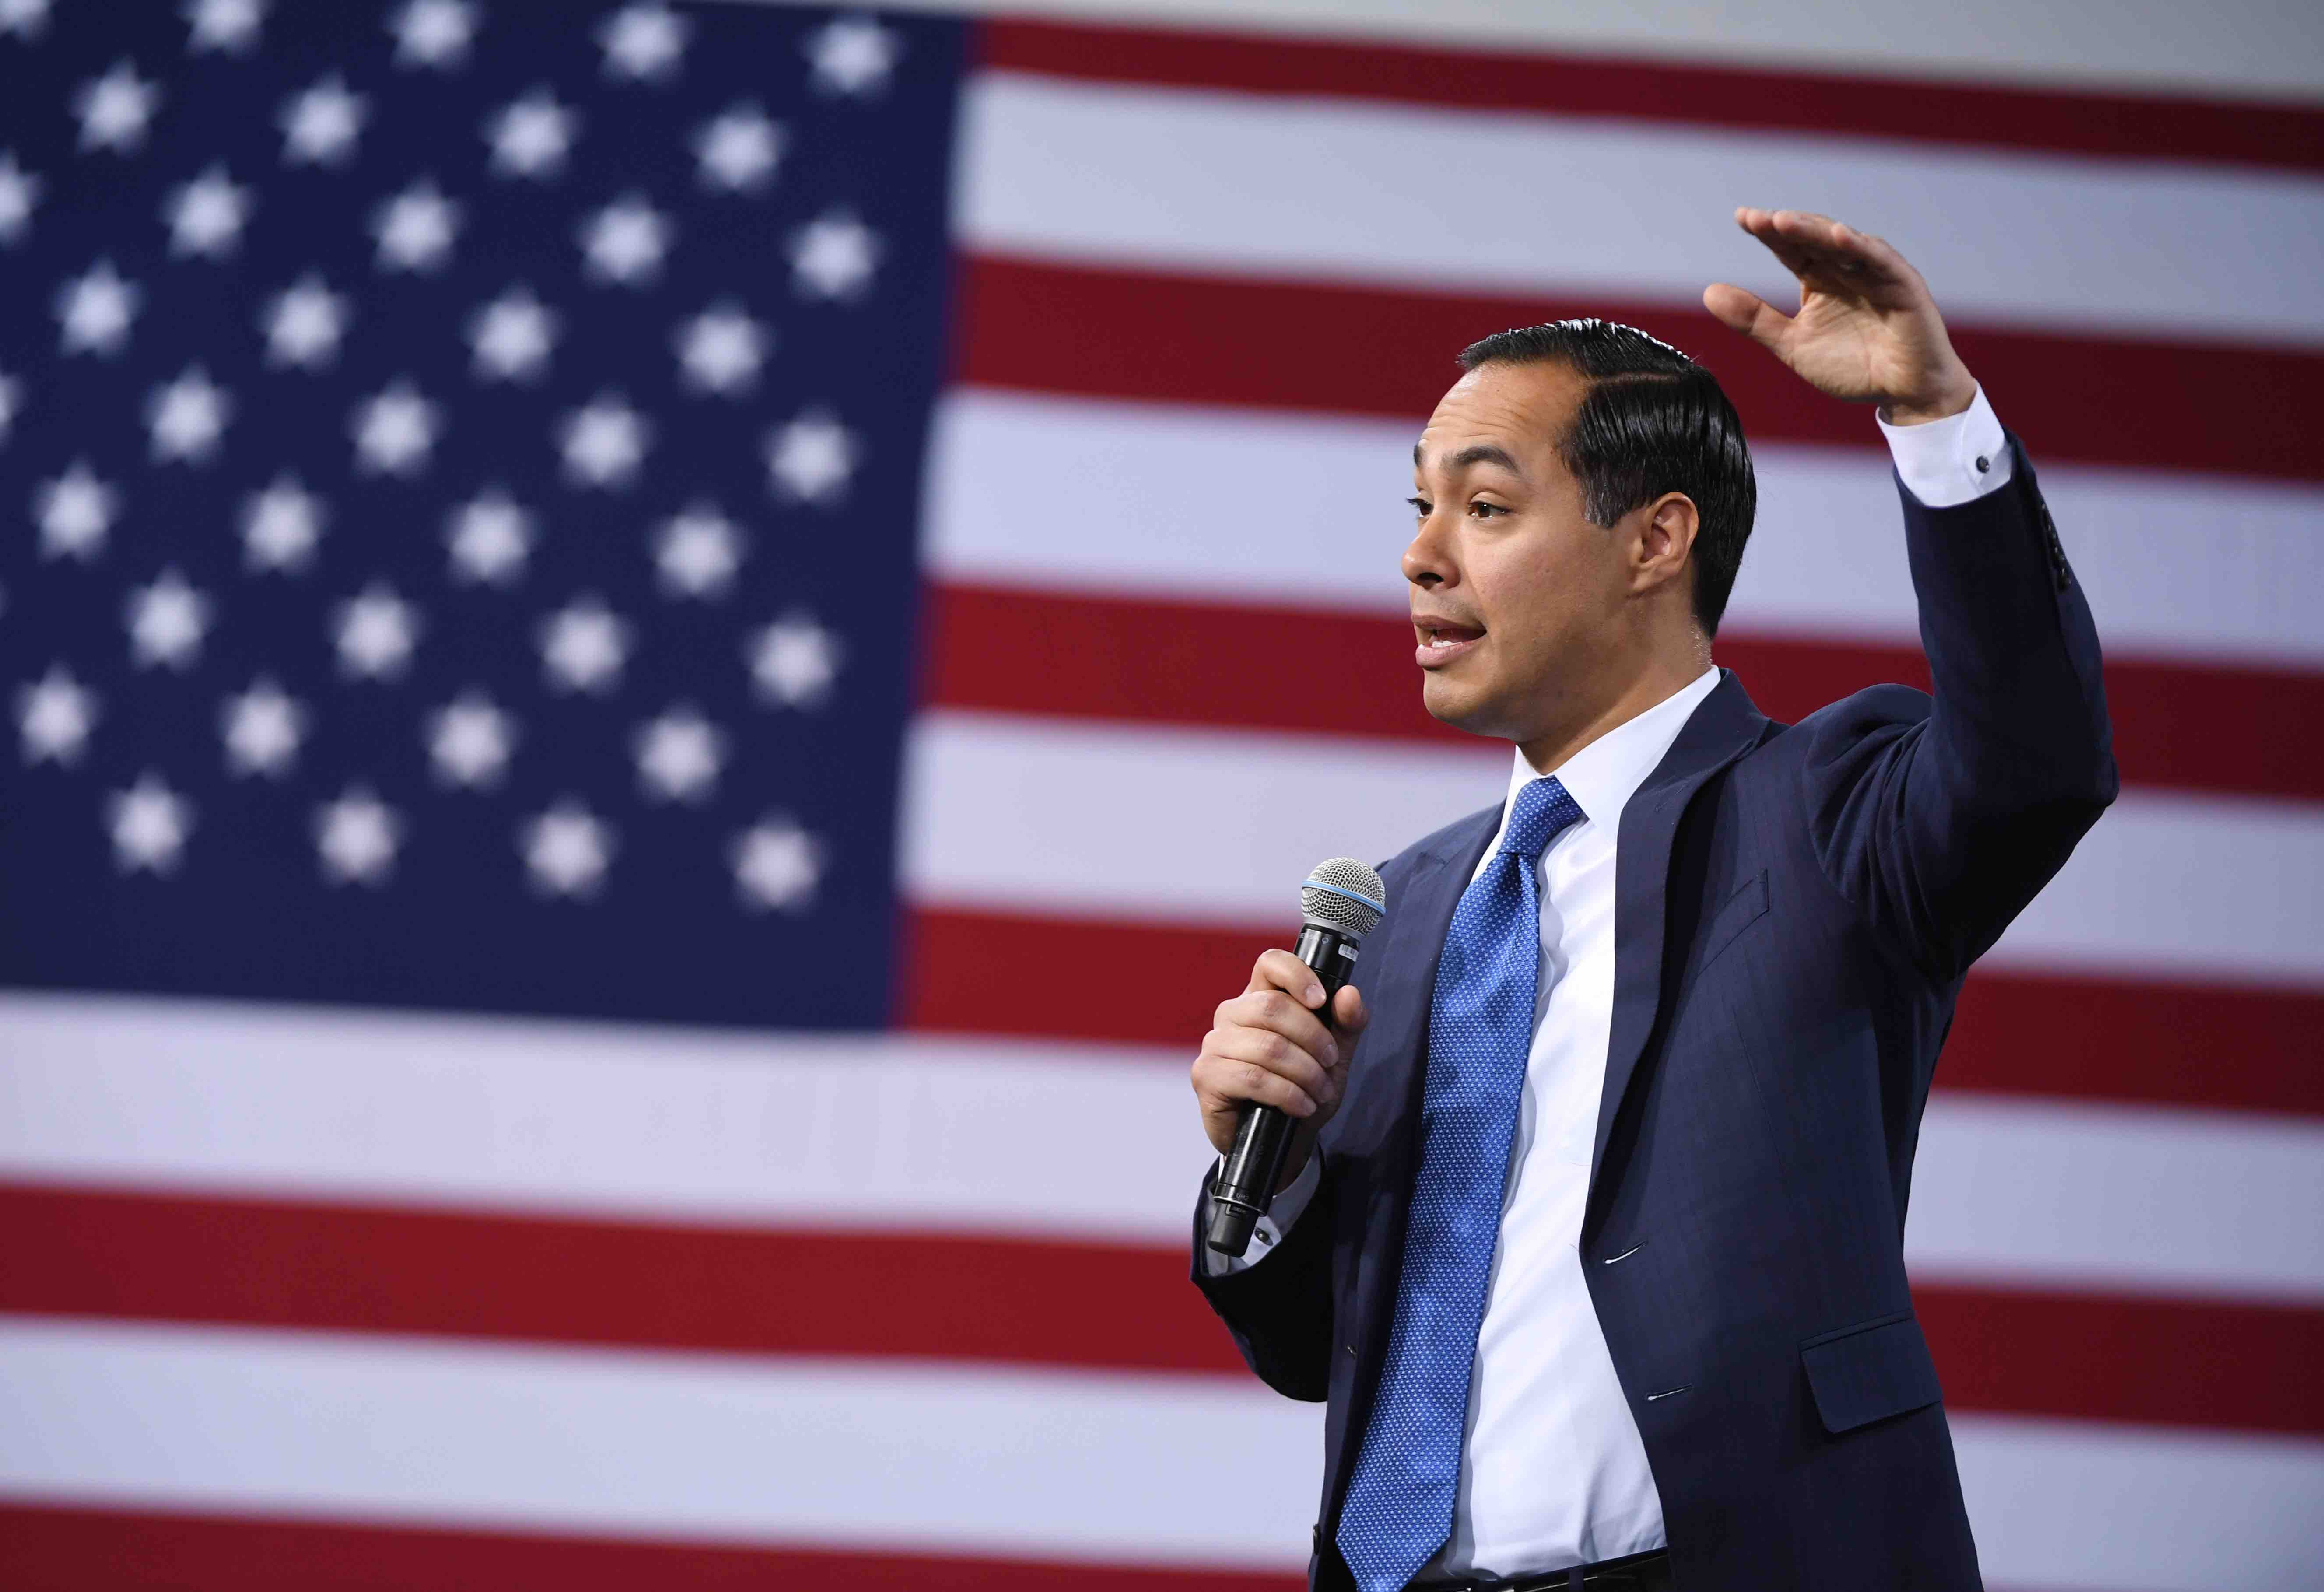 Julián Castro Drops Out of 2020 Presidential Race